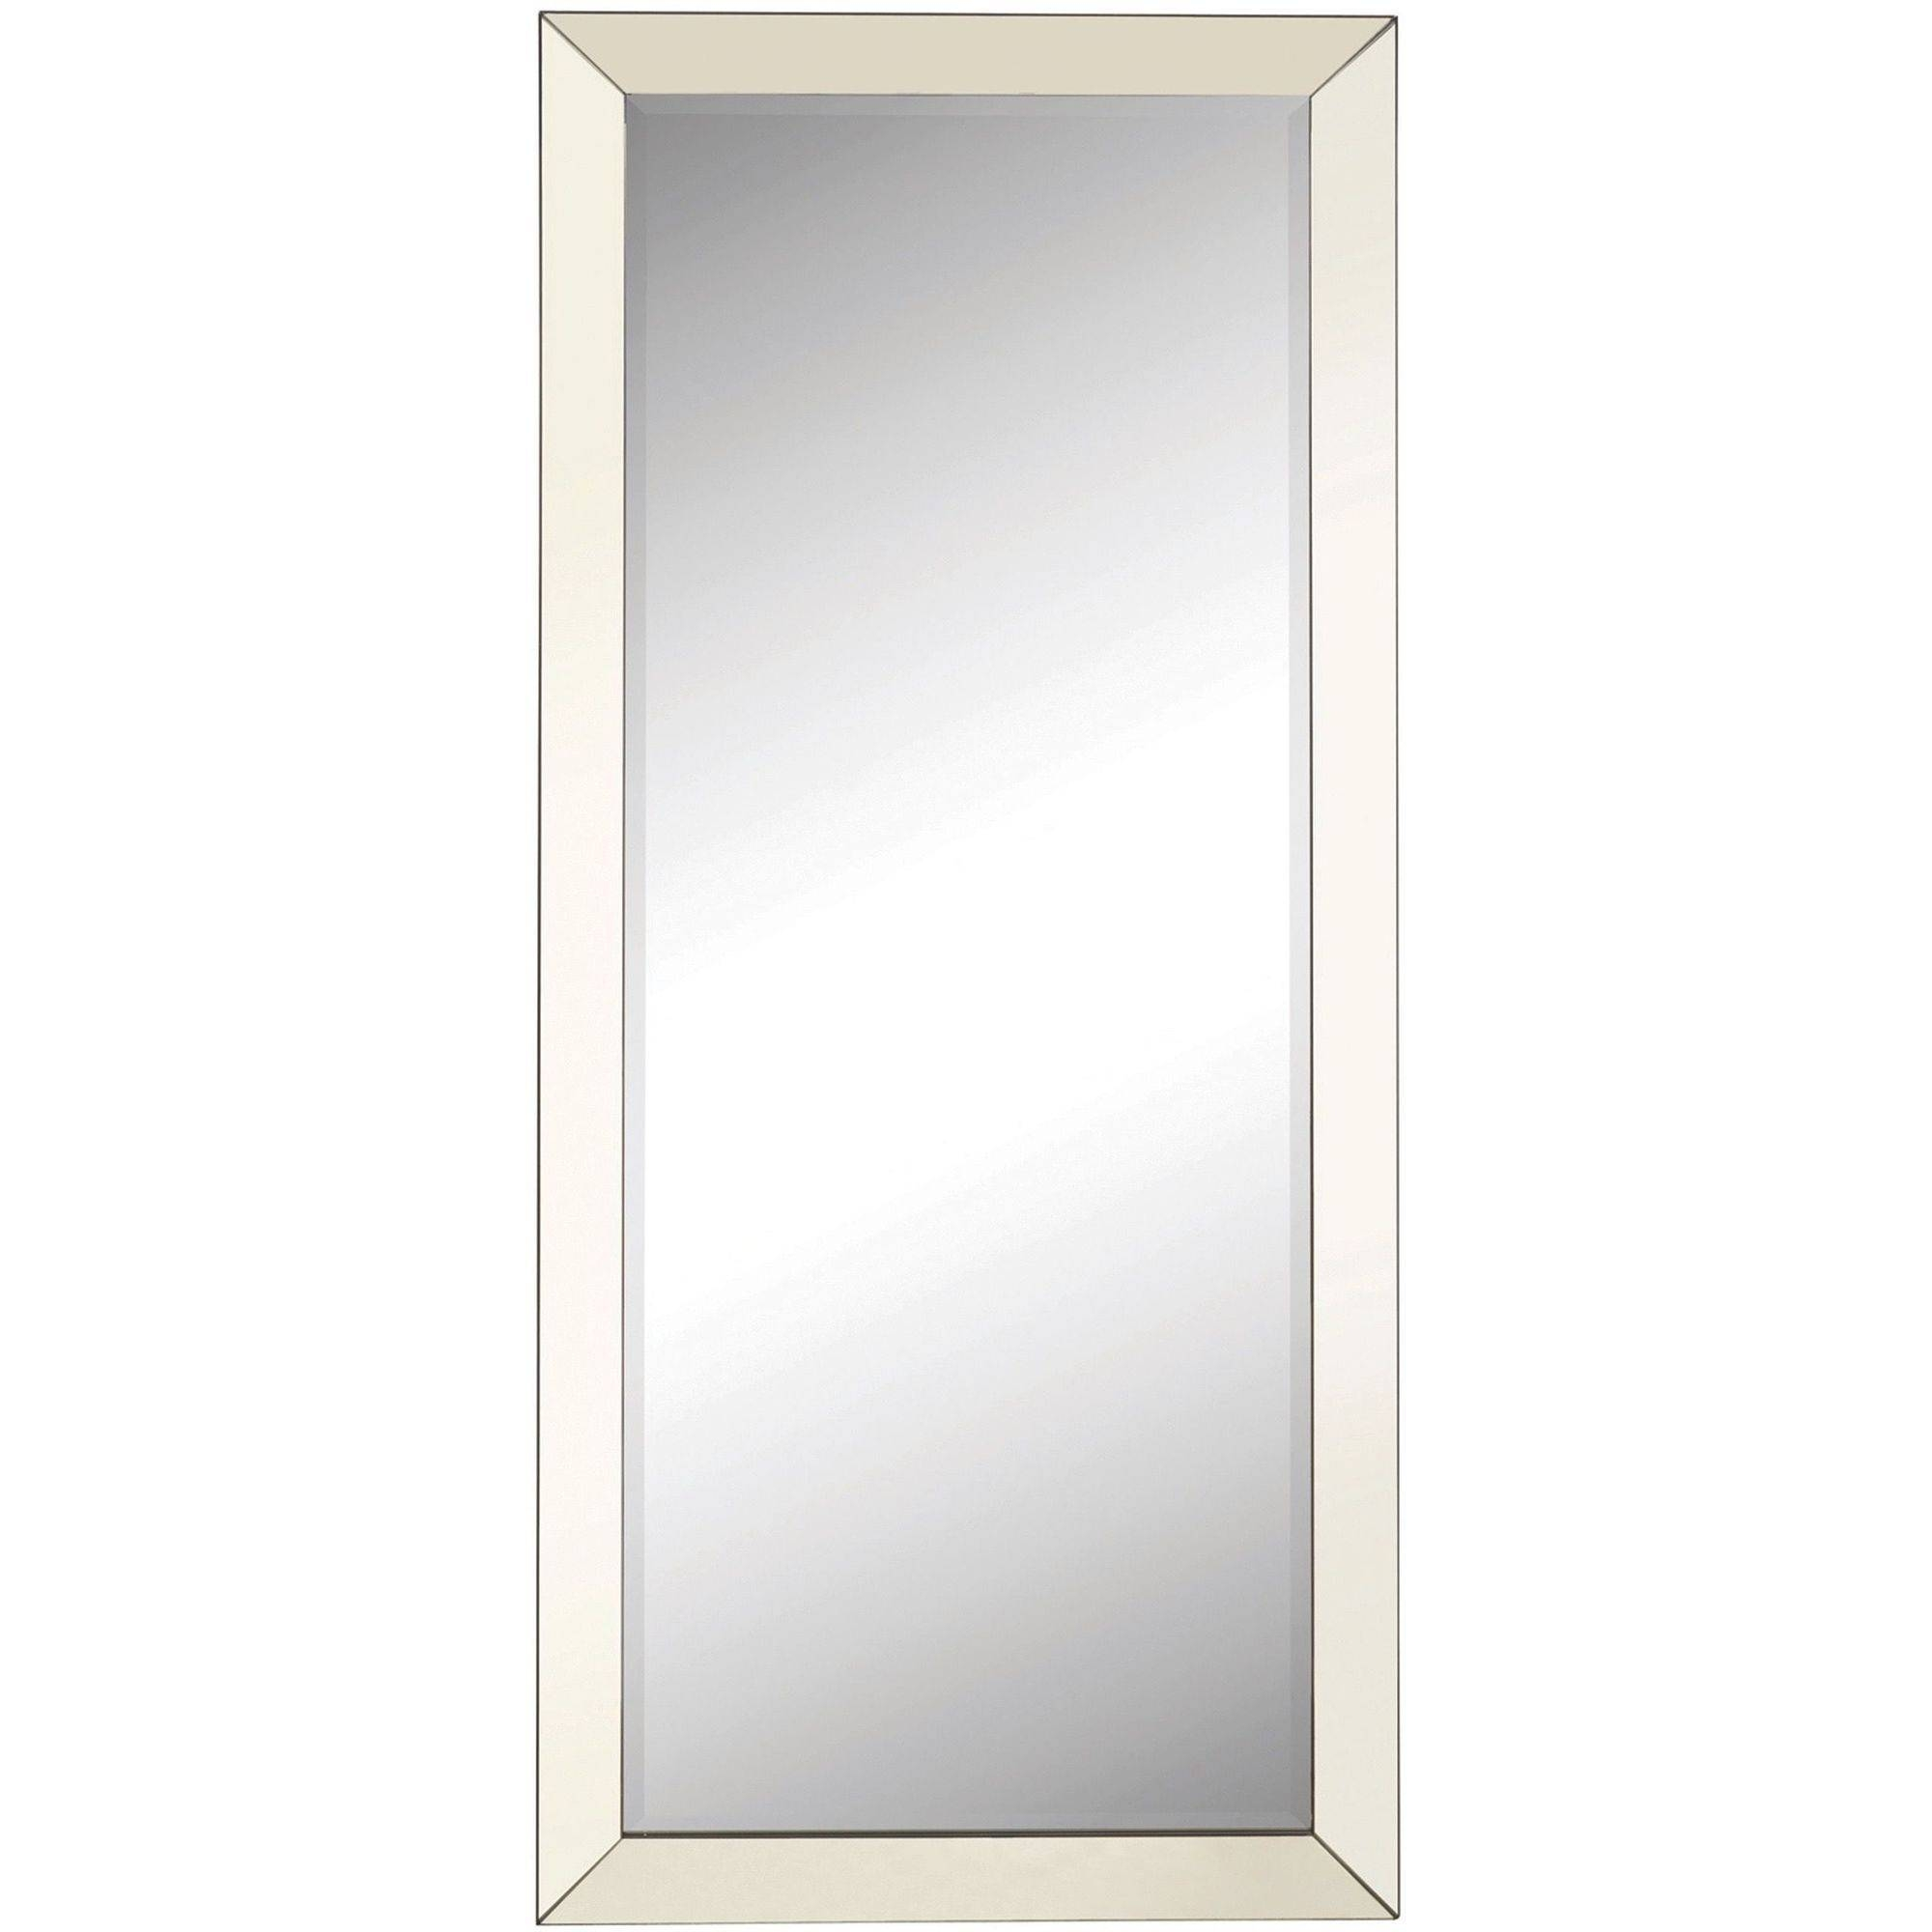 Coaster Company Silver Beveled Mirror Walmart Inside Silver Rectangular Mirror (Image 3 of 15)